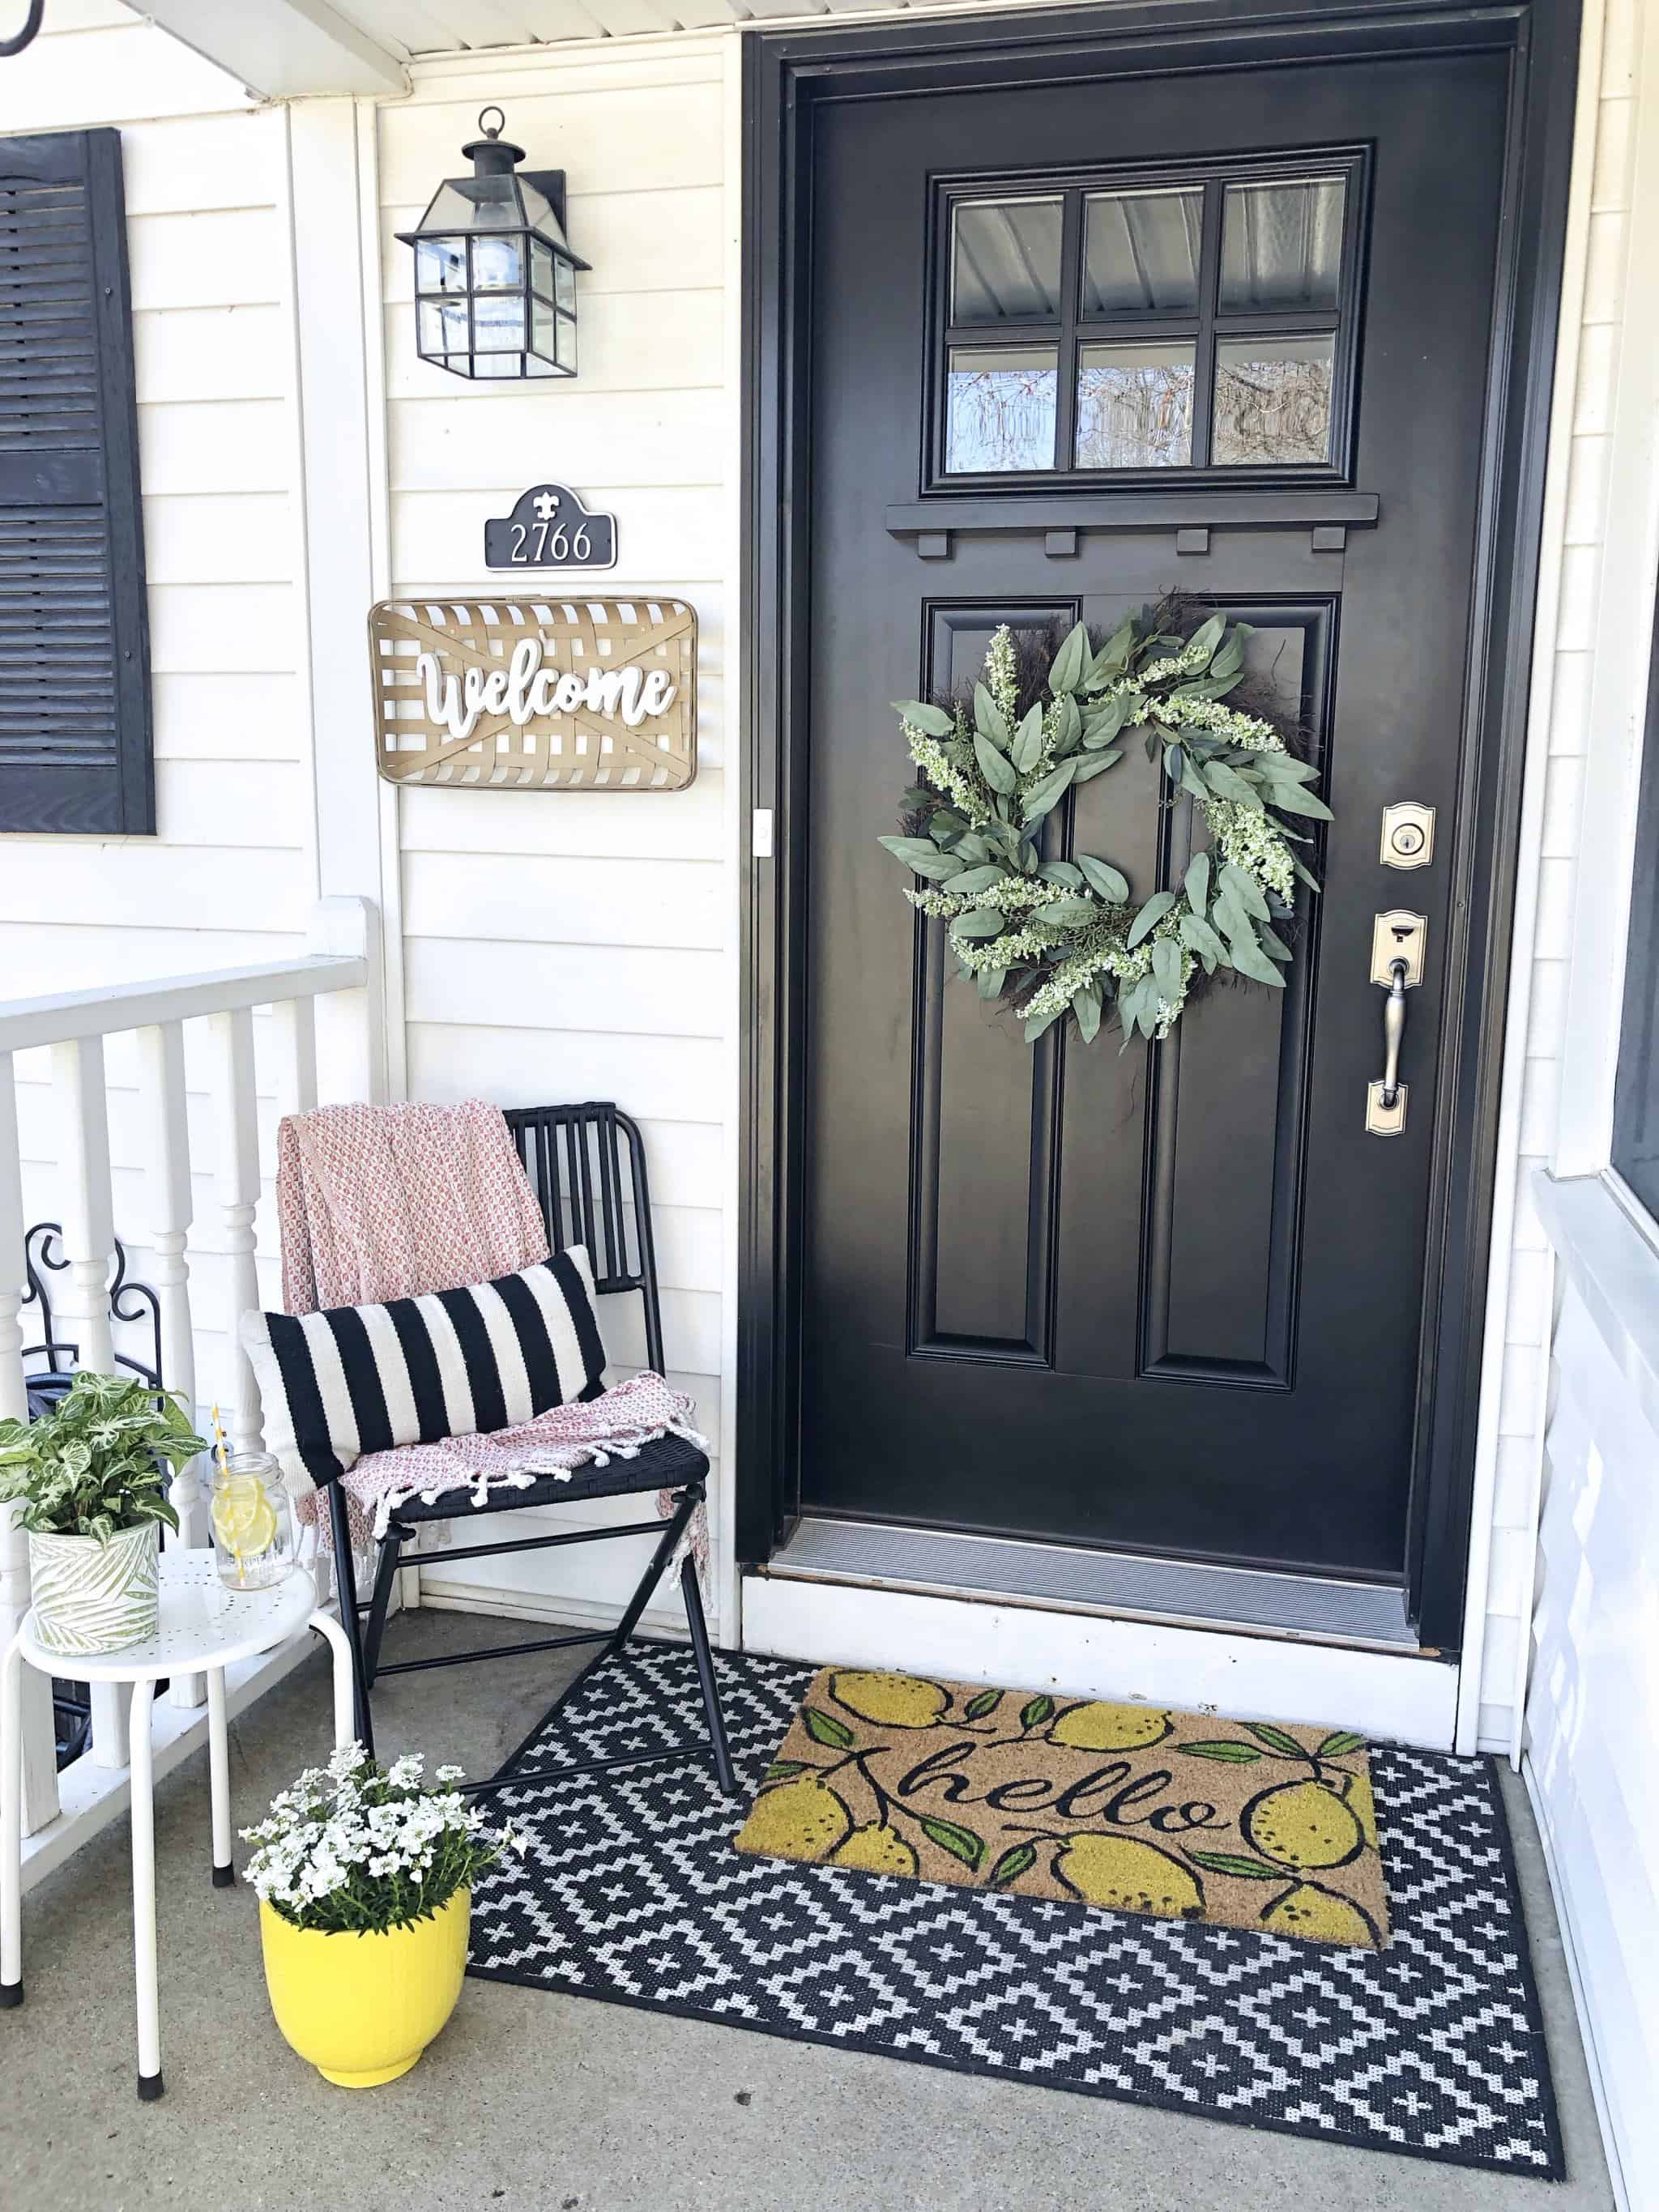 Small Front Porch Decor 7 Budget Friendly Decorating Ideas Coffee Pancakes Dreams